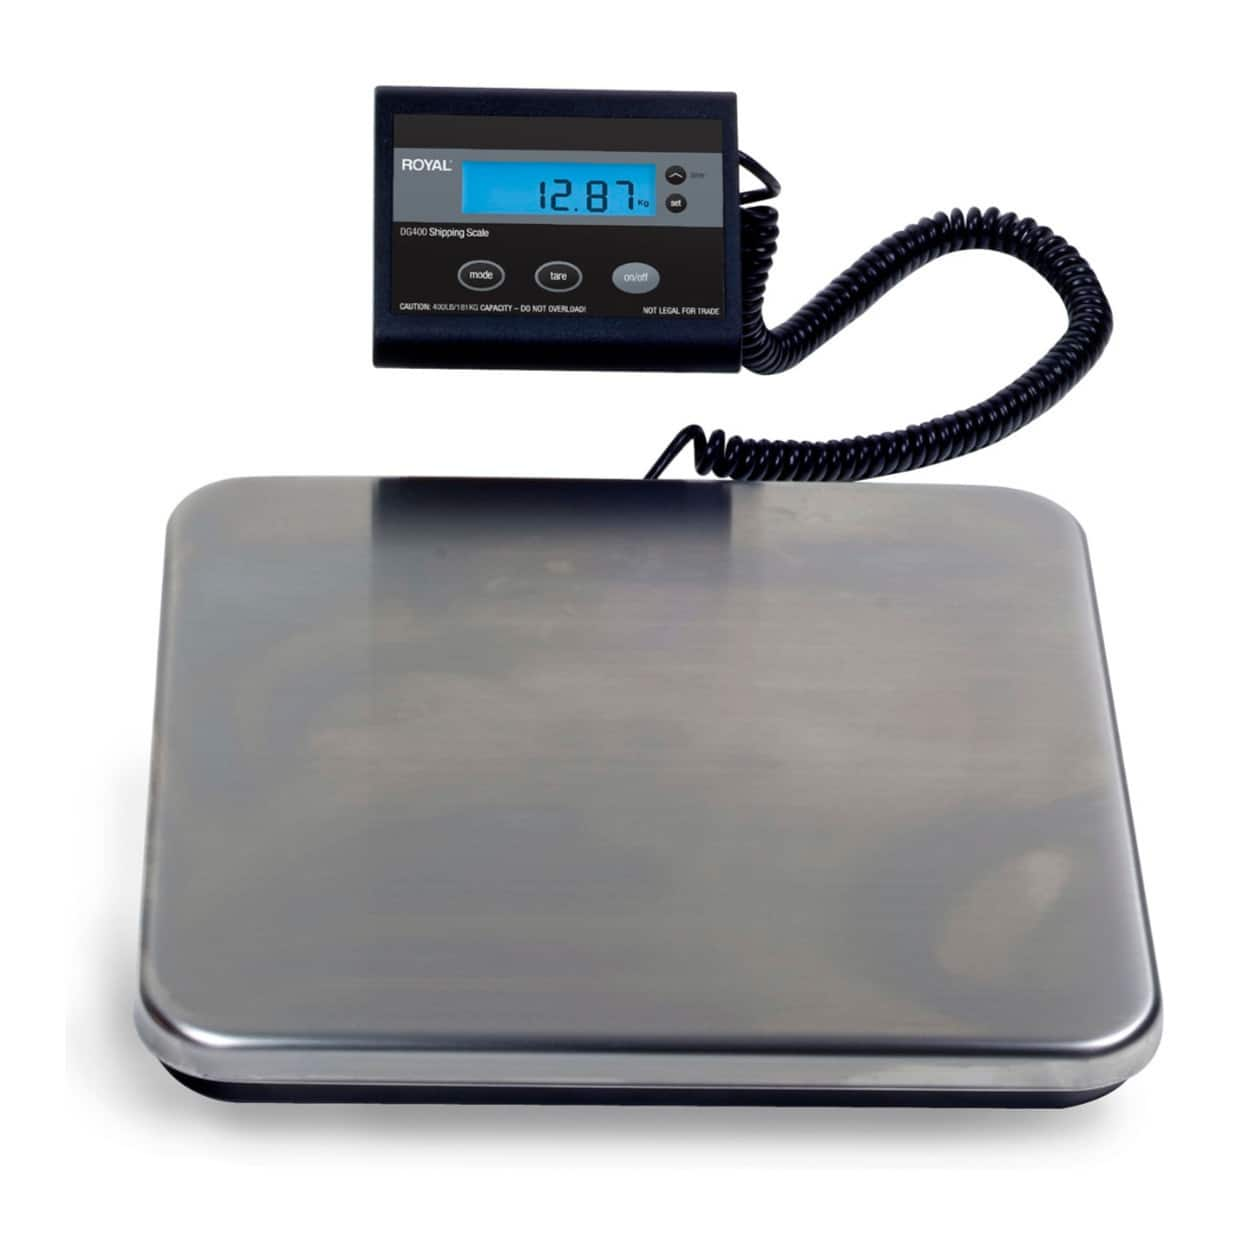 Royal Consumer DG200 Electronic Shipping Scale (200 lb Capacity) for $29.99 + FS